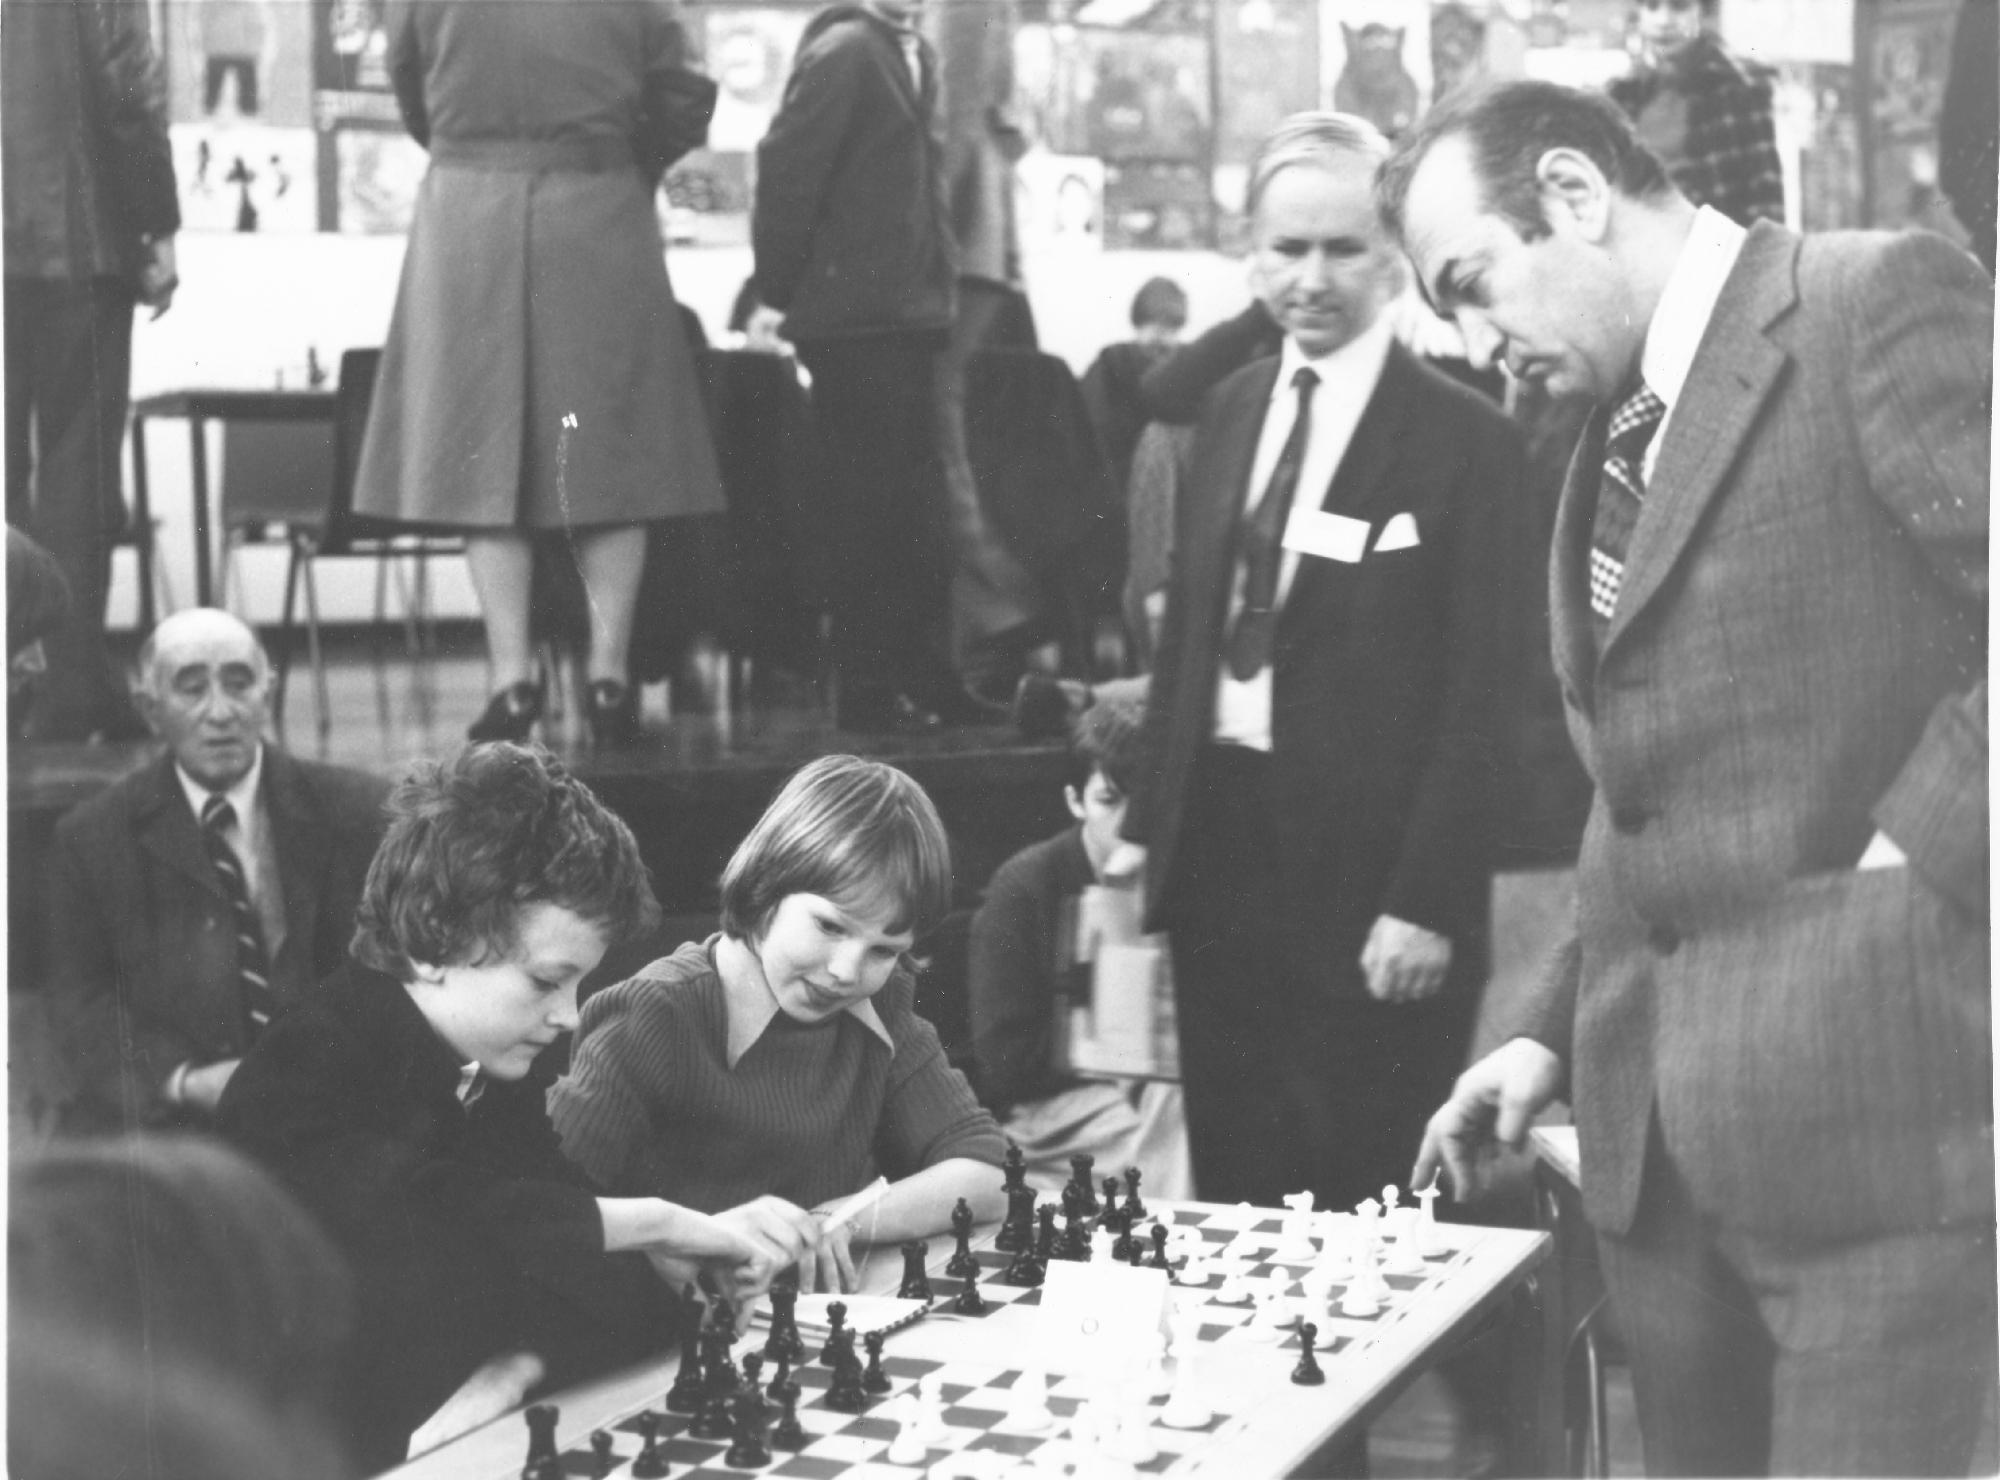 Julian and Nigel Short play Korchnoi in a simul. Leonard Barden observes.